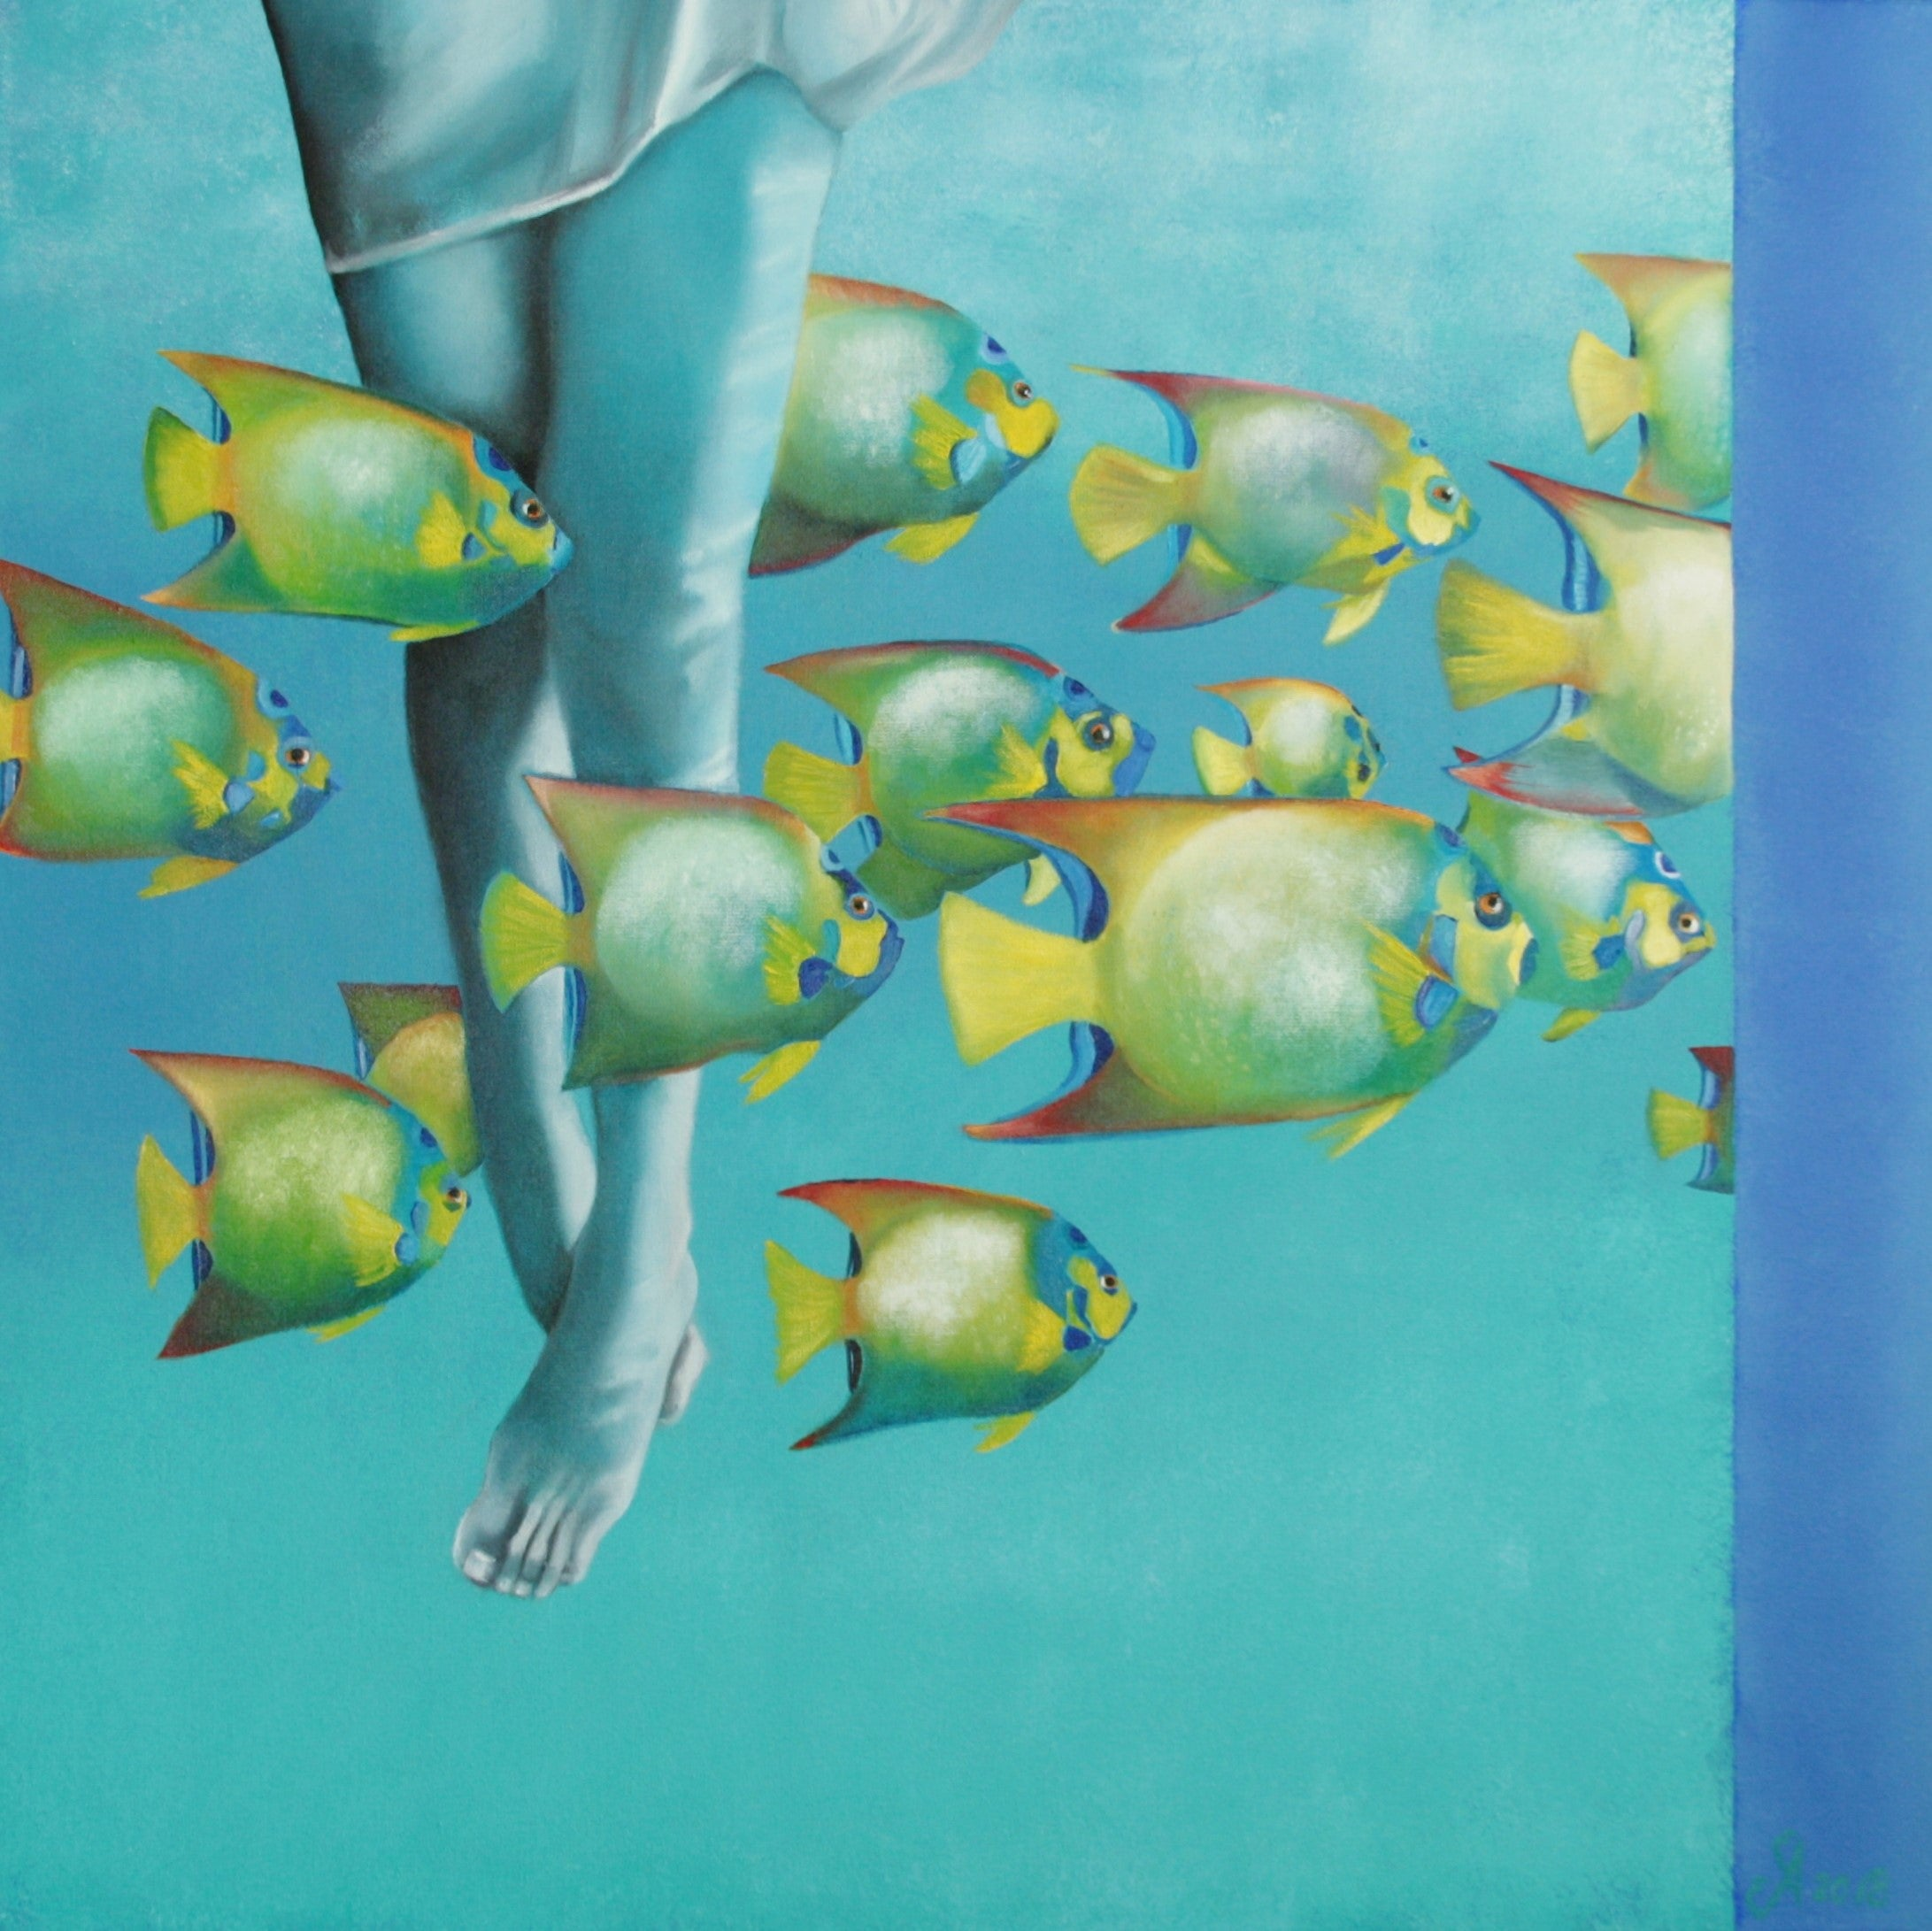 Water ballet (90 x 90cm) - ArtFusion.nl